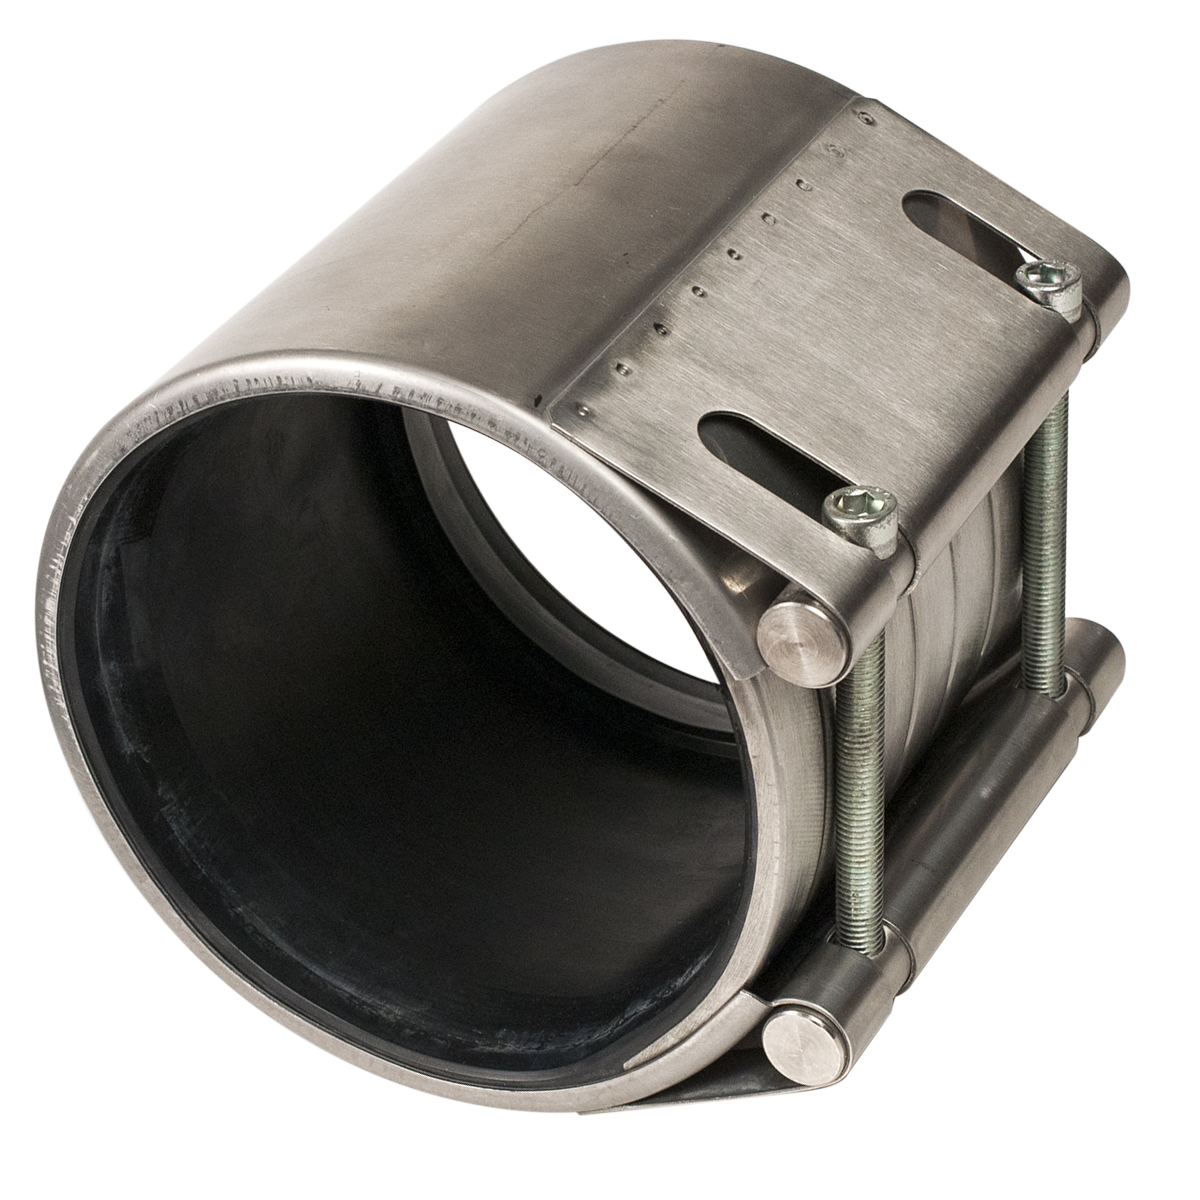 ARMOR LINK - Stainless steel pipe coupling with hydrostatic gasket.Nominal Sizes4 - 24 inchesWorking PressureSee catalog pagePipe CompatibilitySteel, cast iron, ductile iron, asbestos cement, concrete,PVC, HDPE